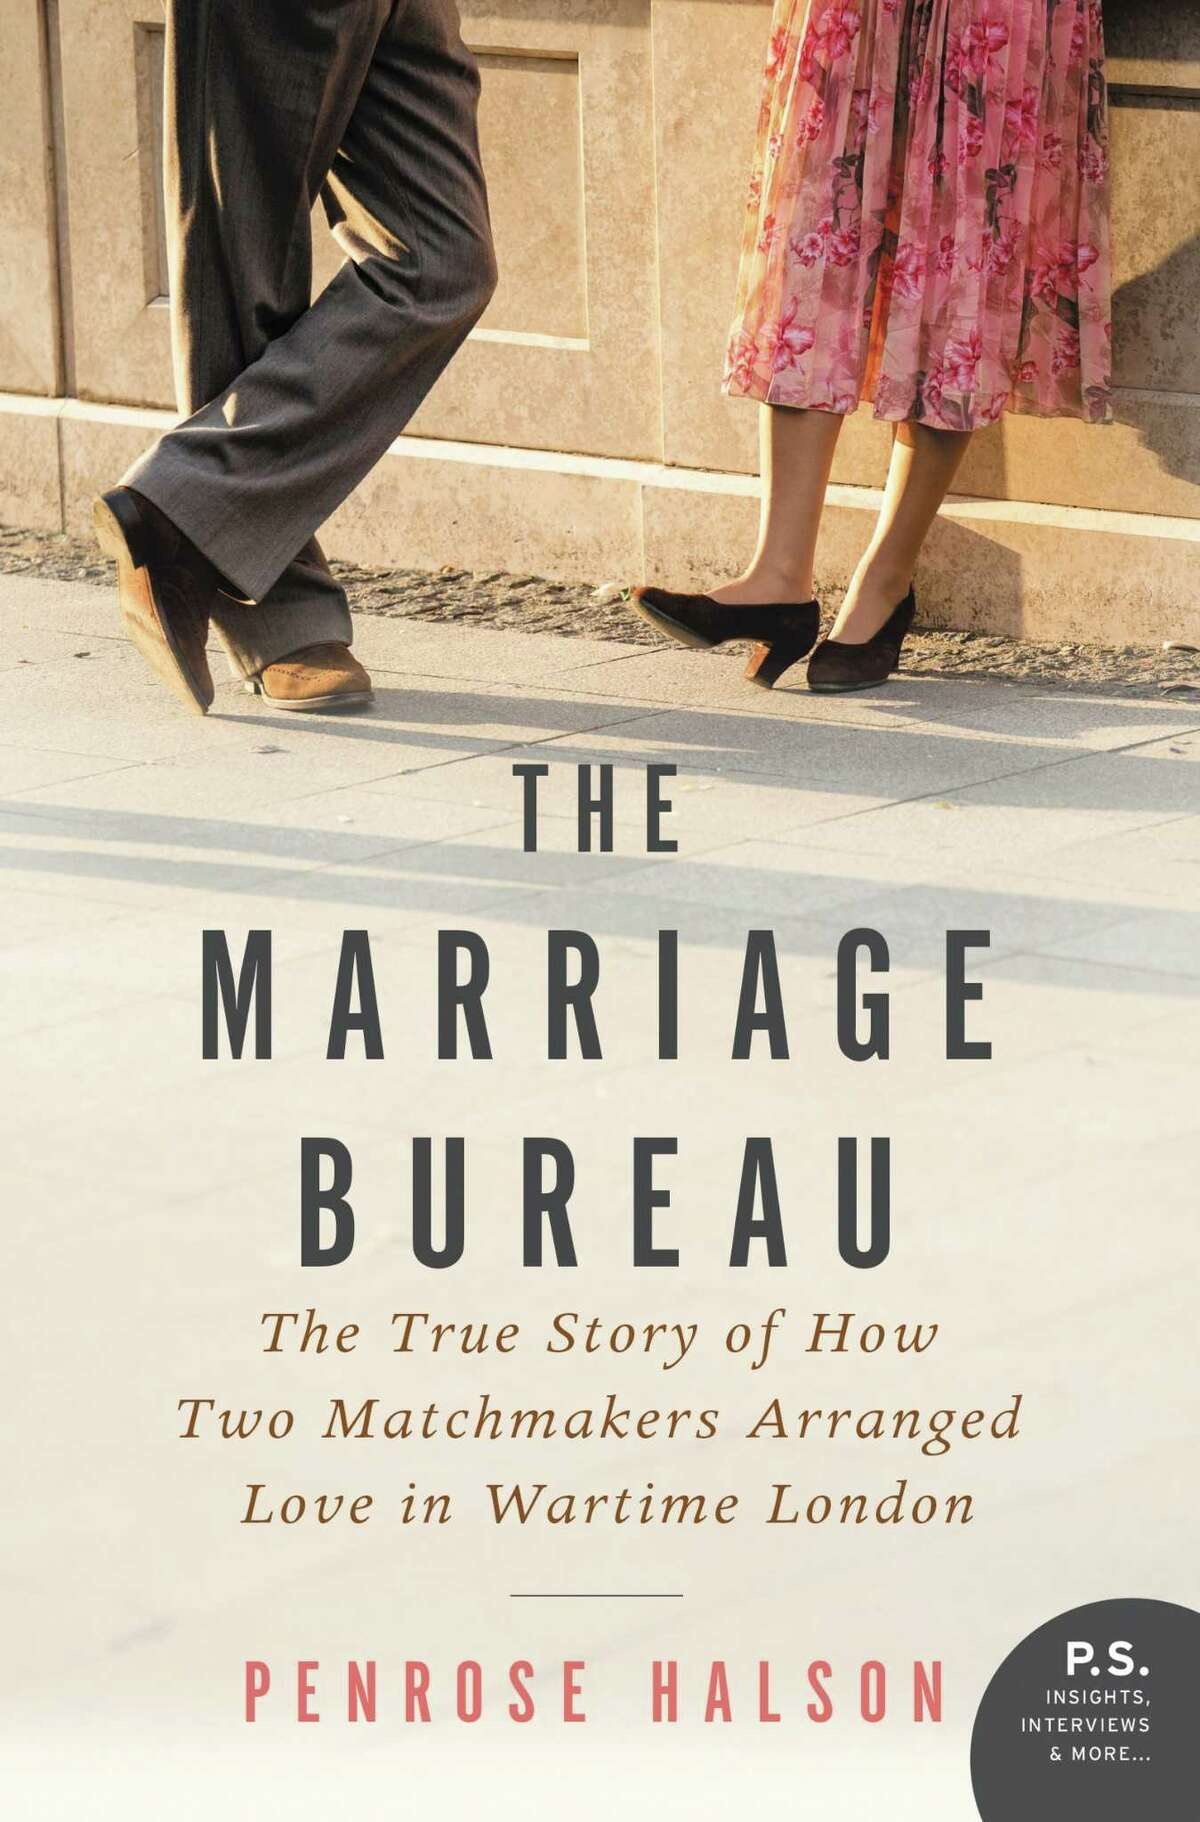 The Marriage Bureau by Penrose Halson (May 2) Penrose Halson tells the story of two young women who opened a London matchmaking service in 1939. The